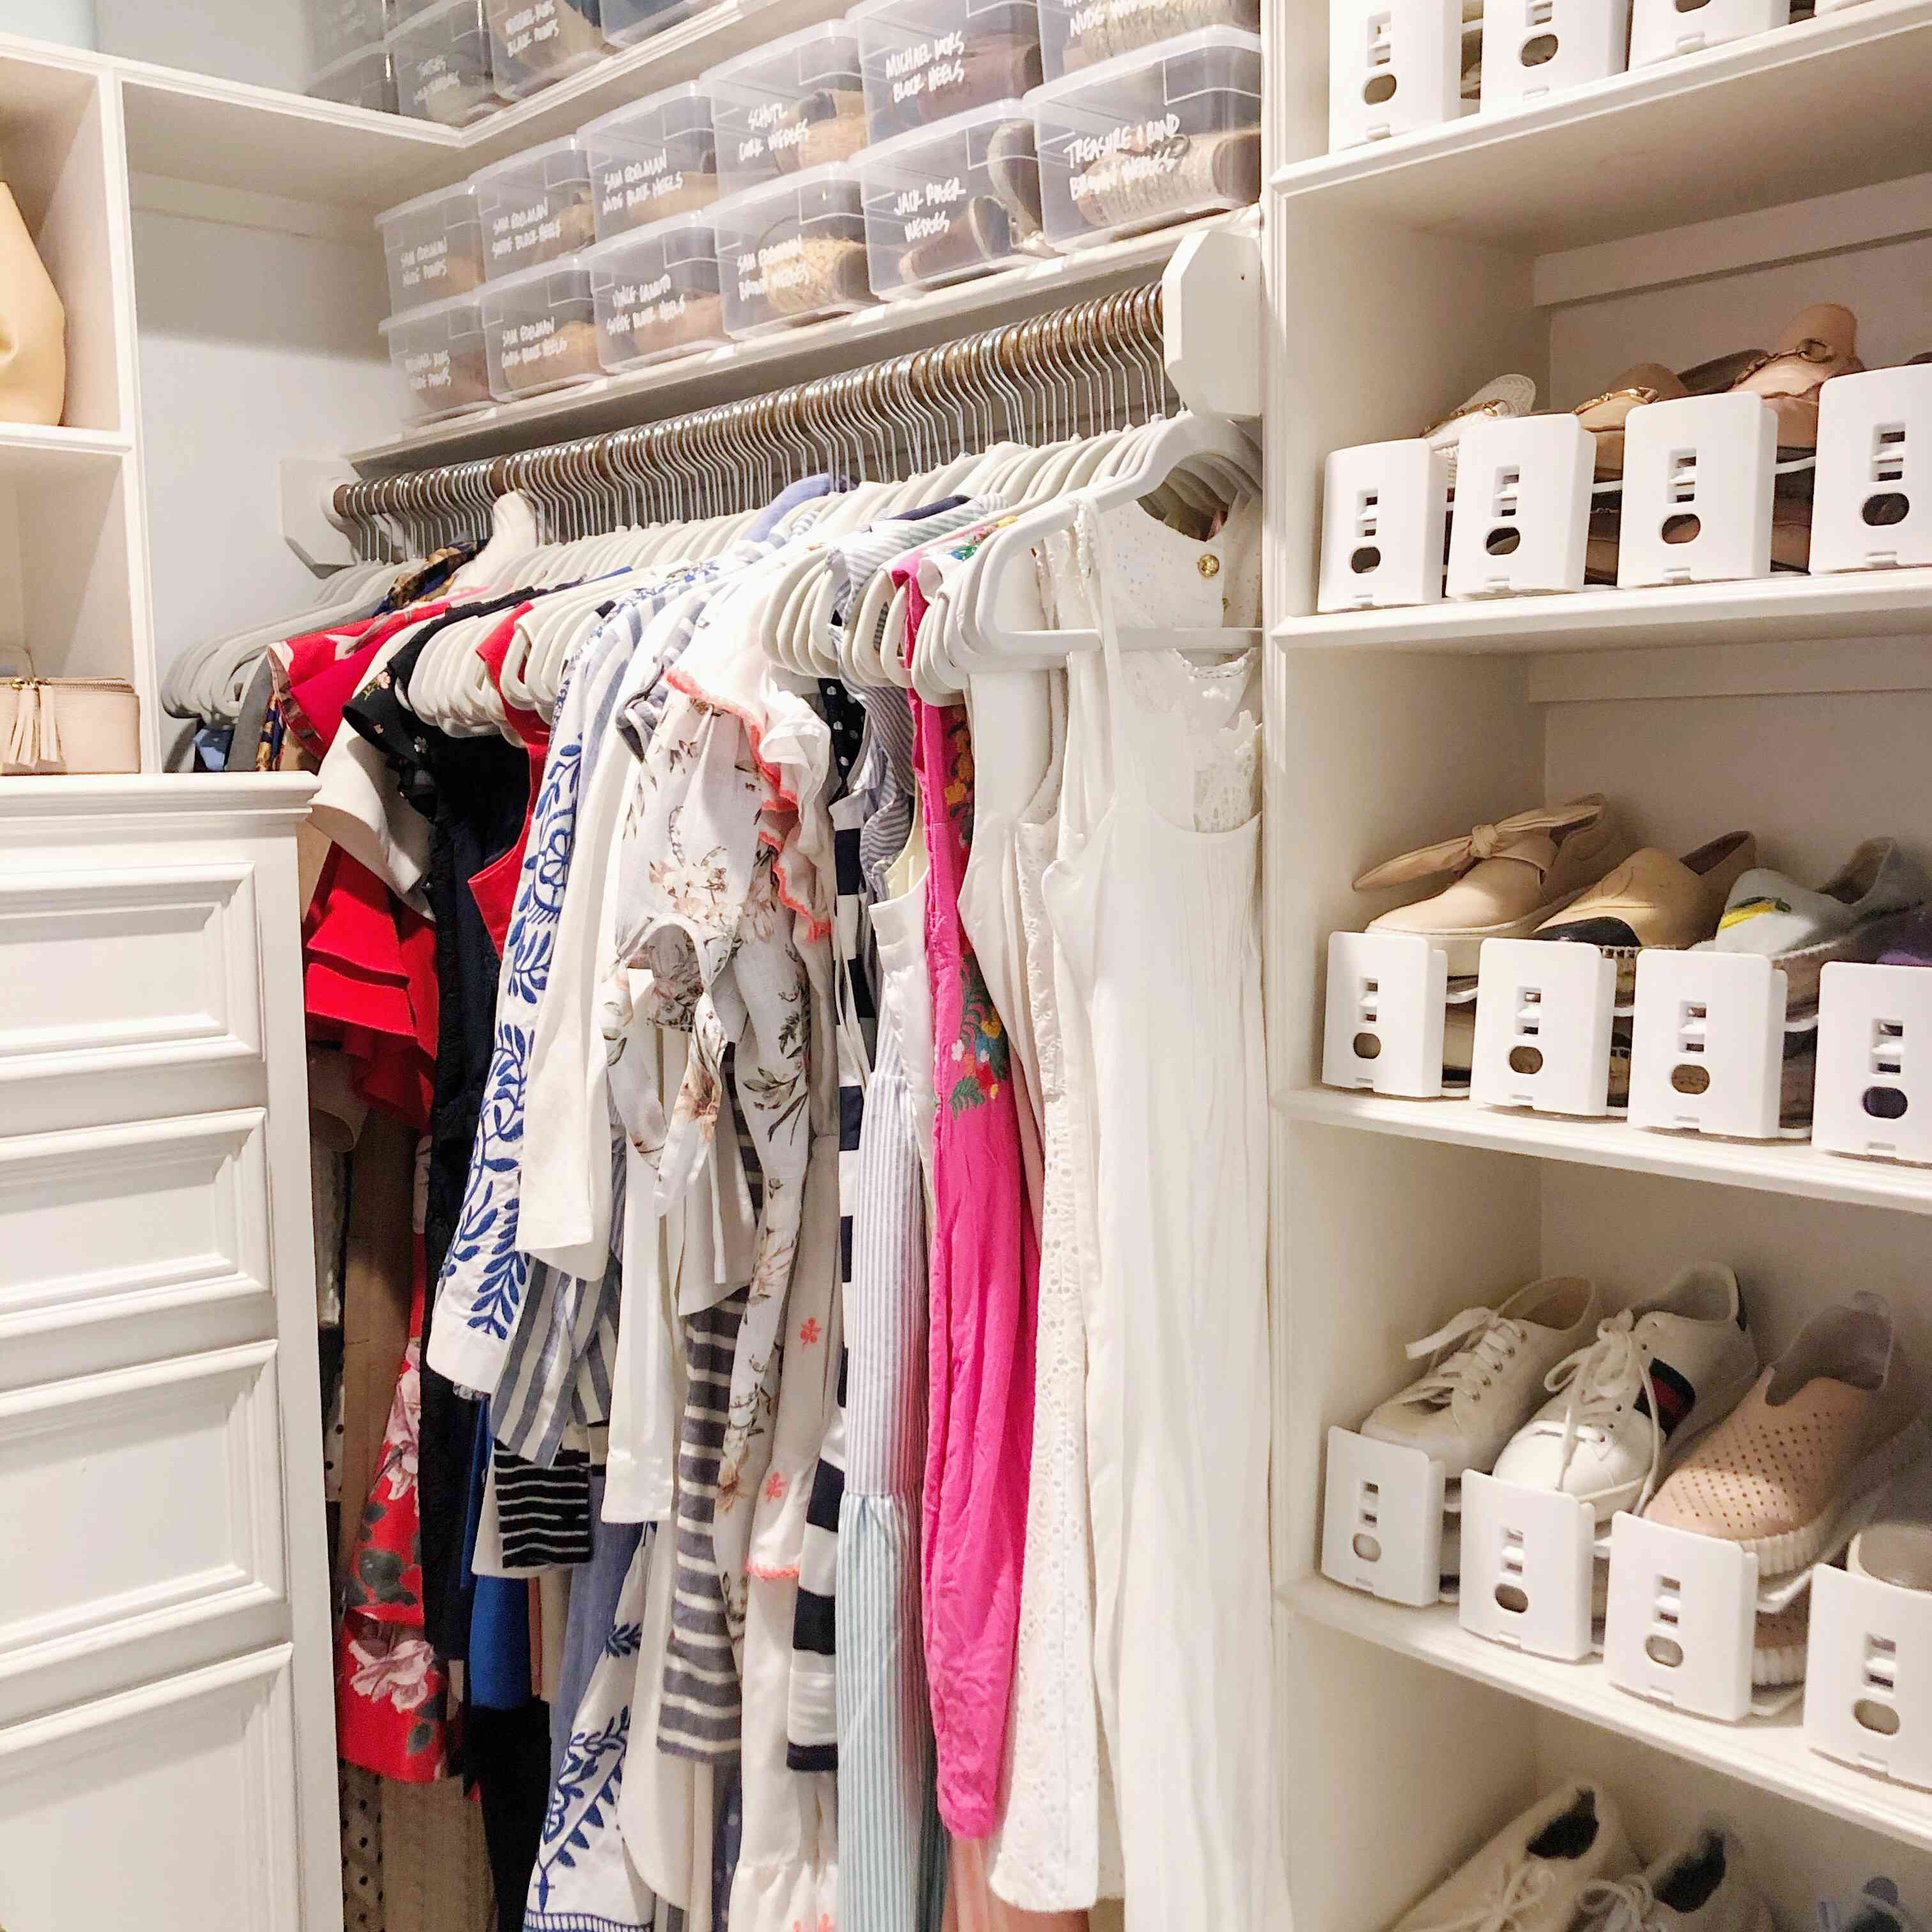 Clear bins on top of a closet